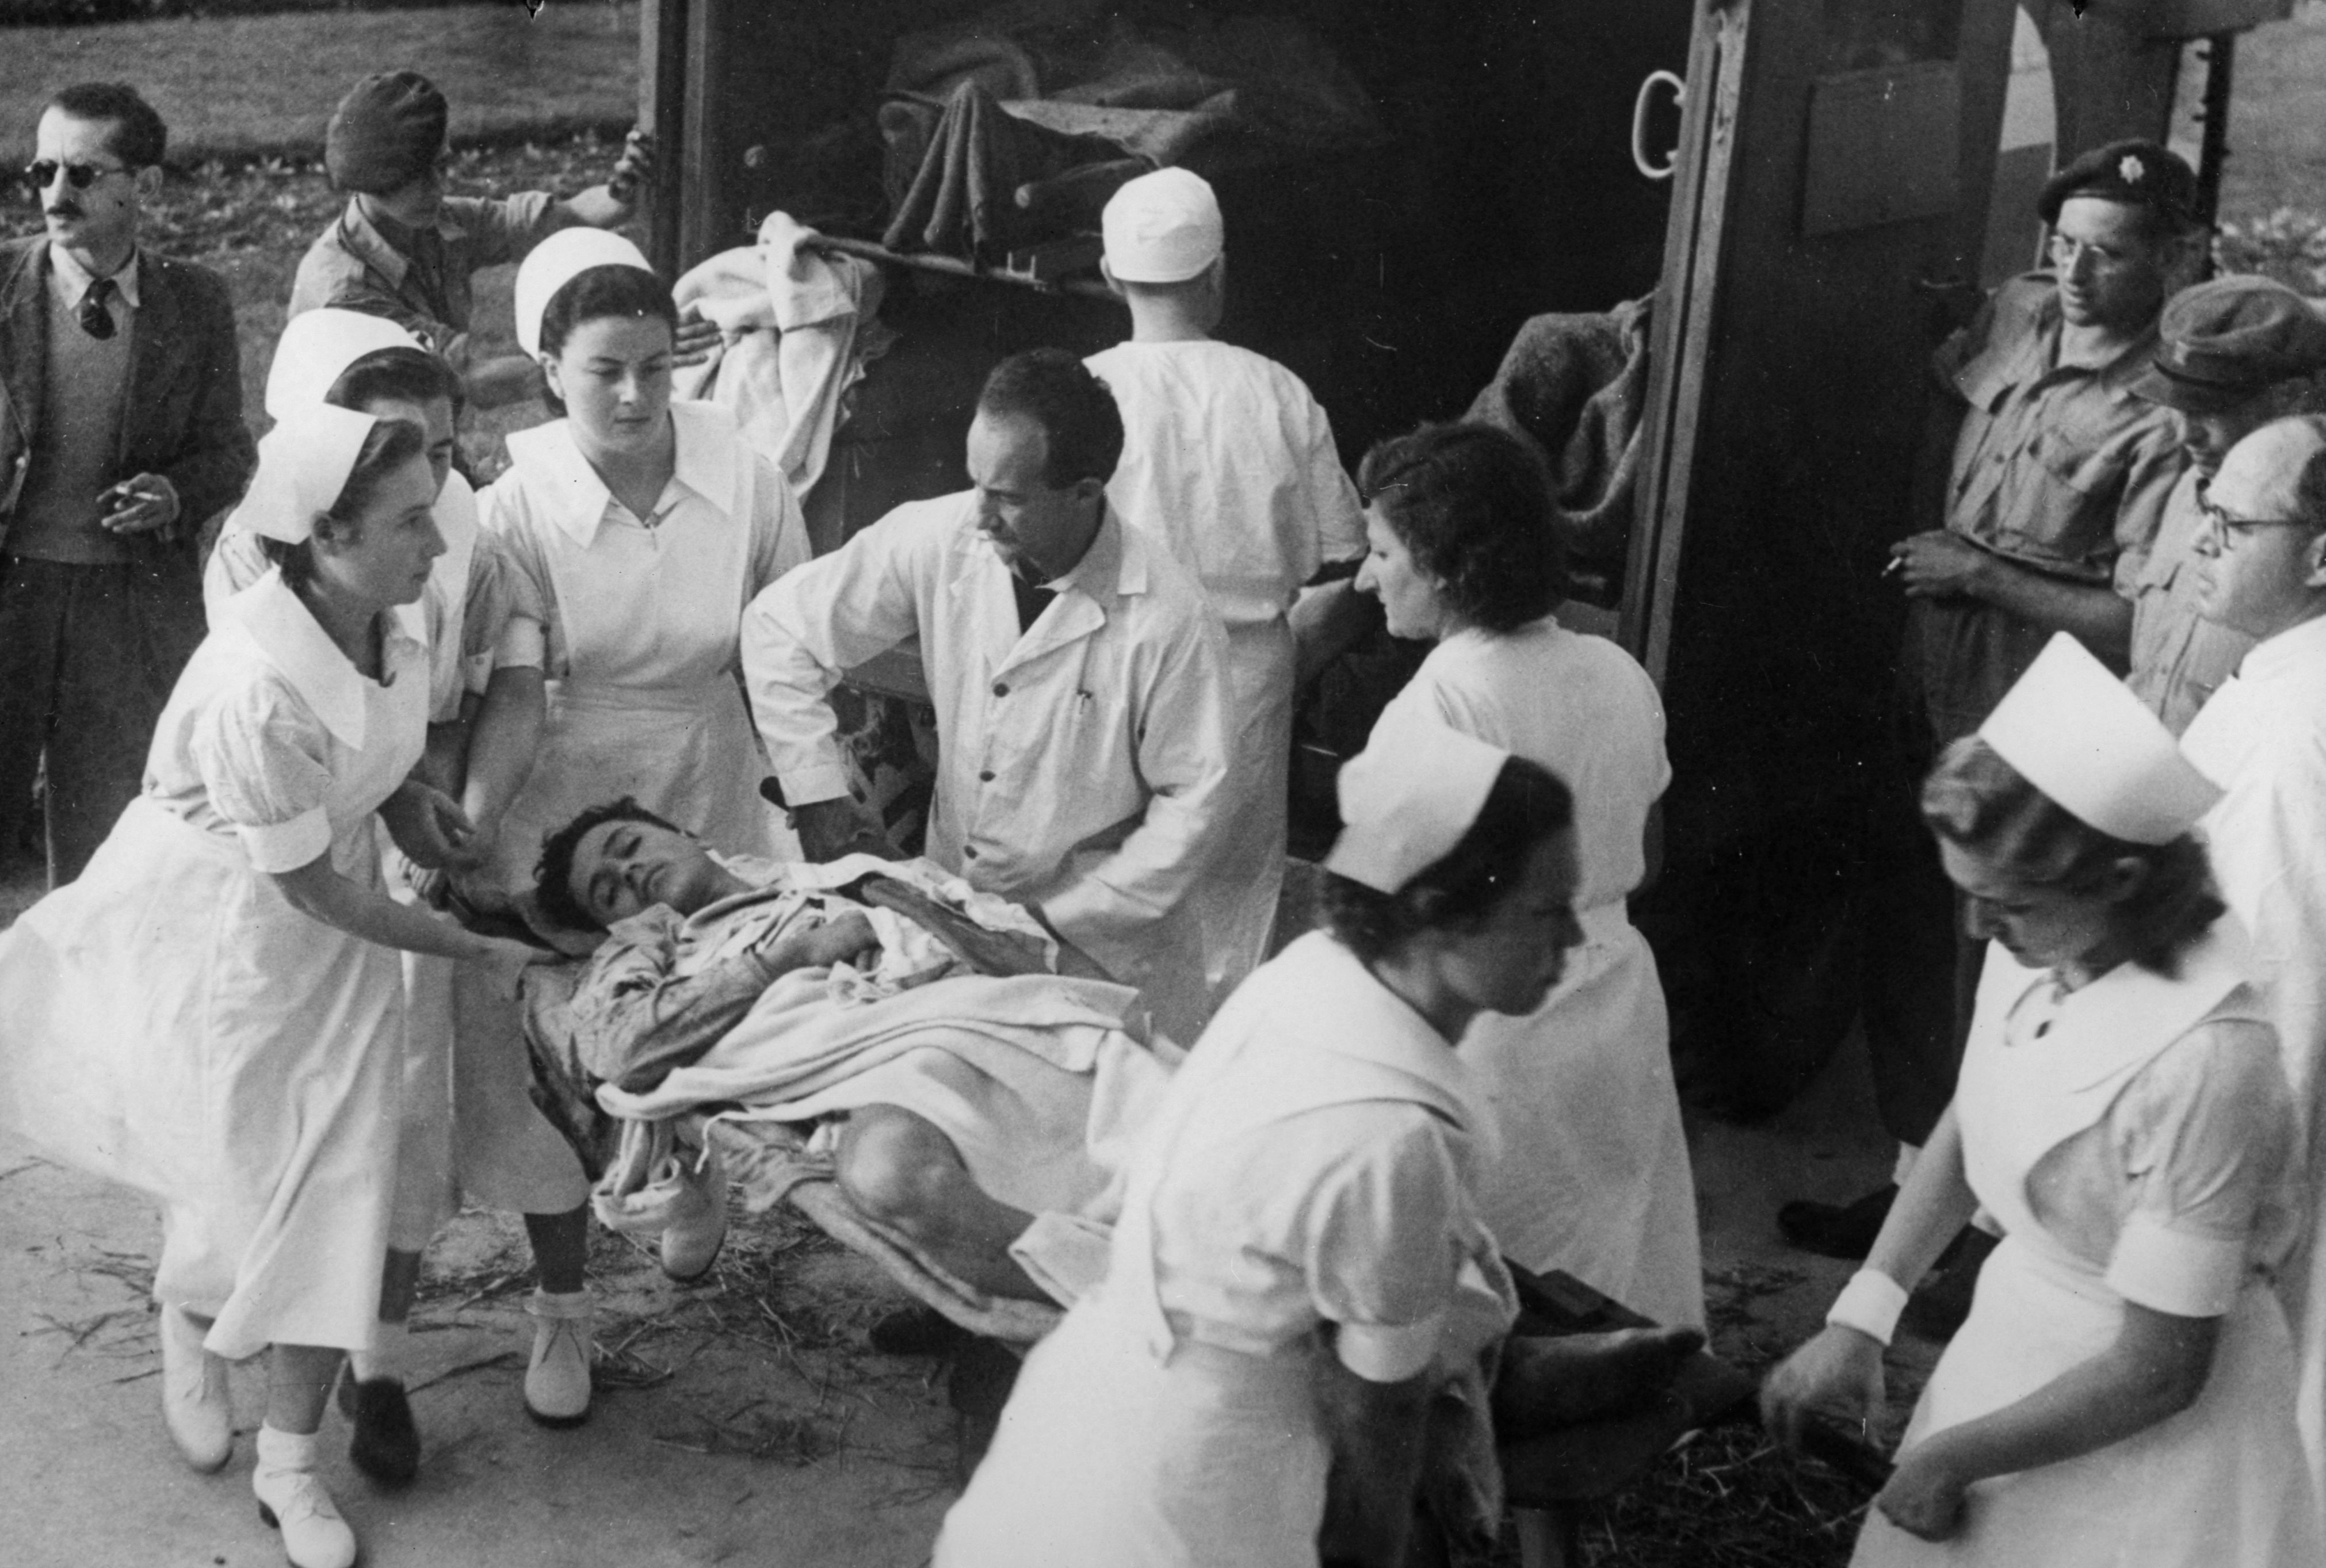 Doctors and nurses tend to the wounded